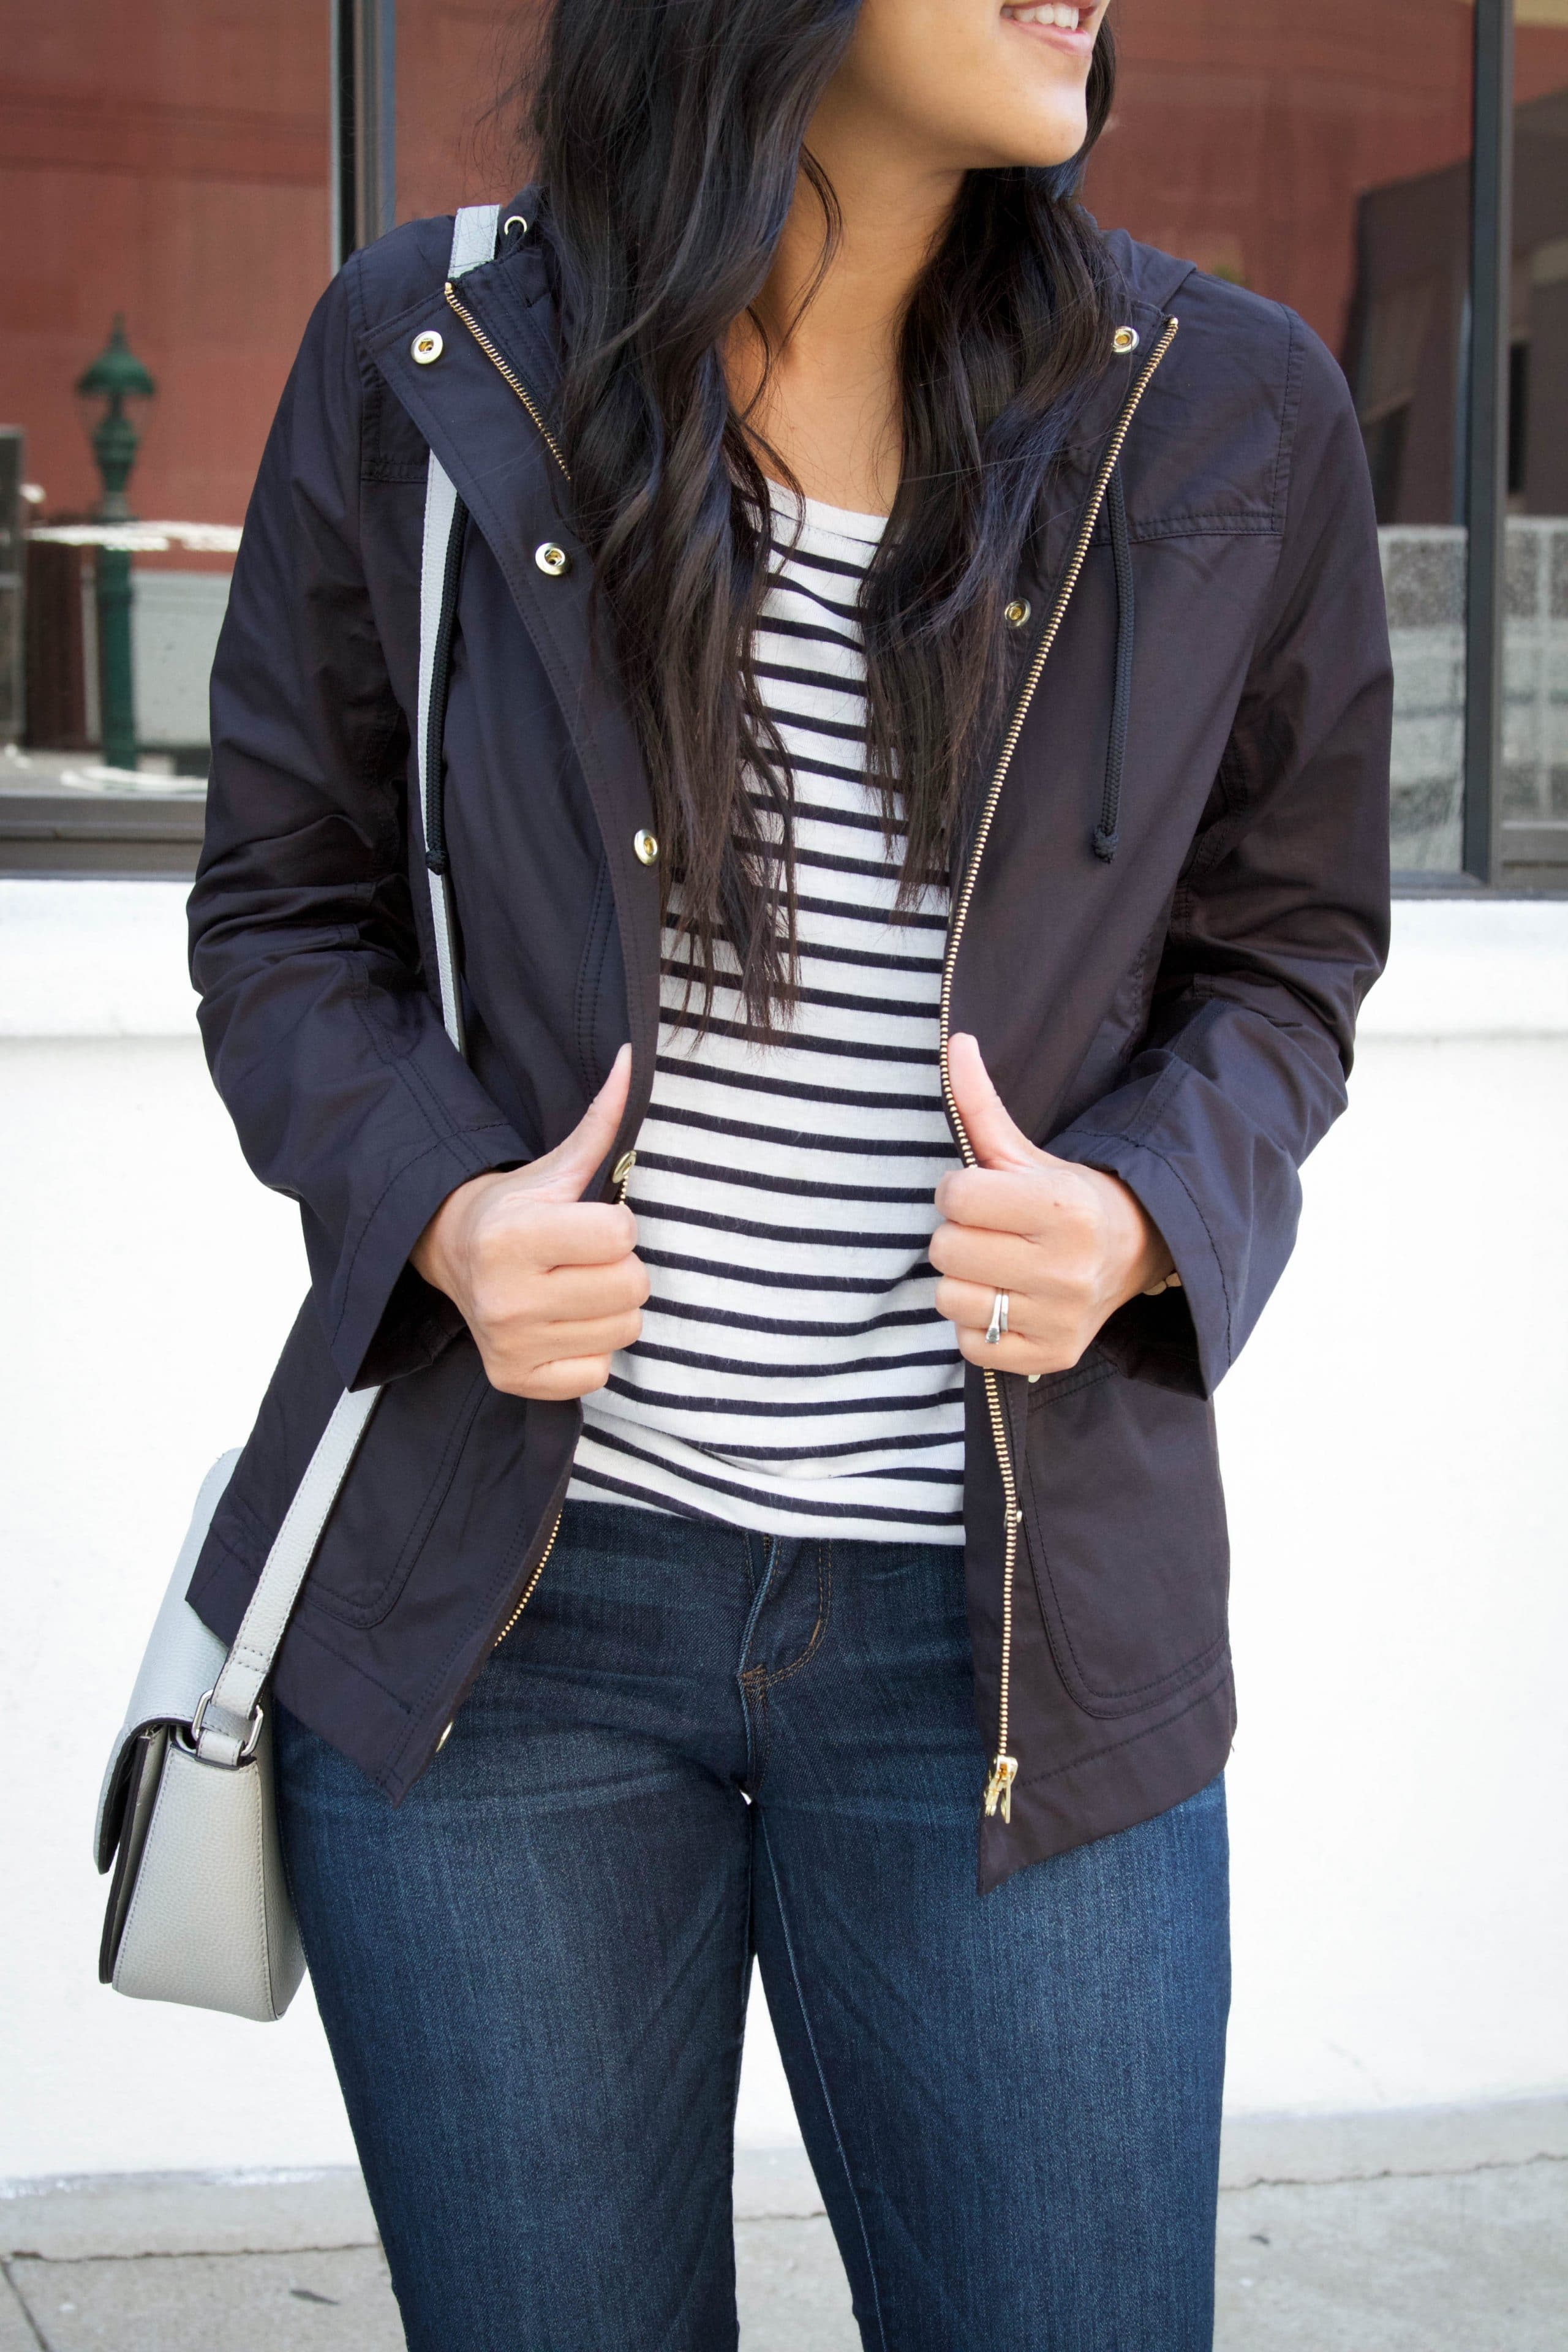 Black Rain Jacket + Striped Tee + Jeans + Grey Bag